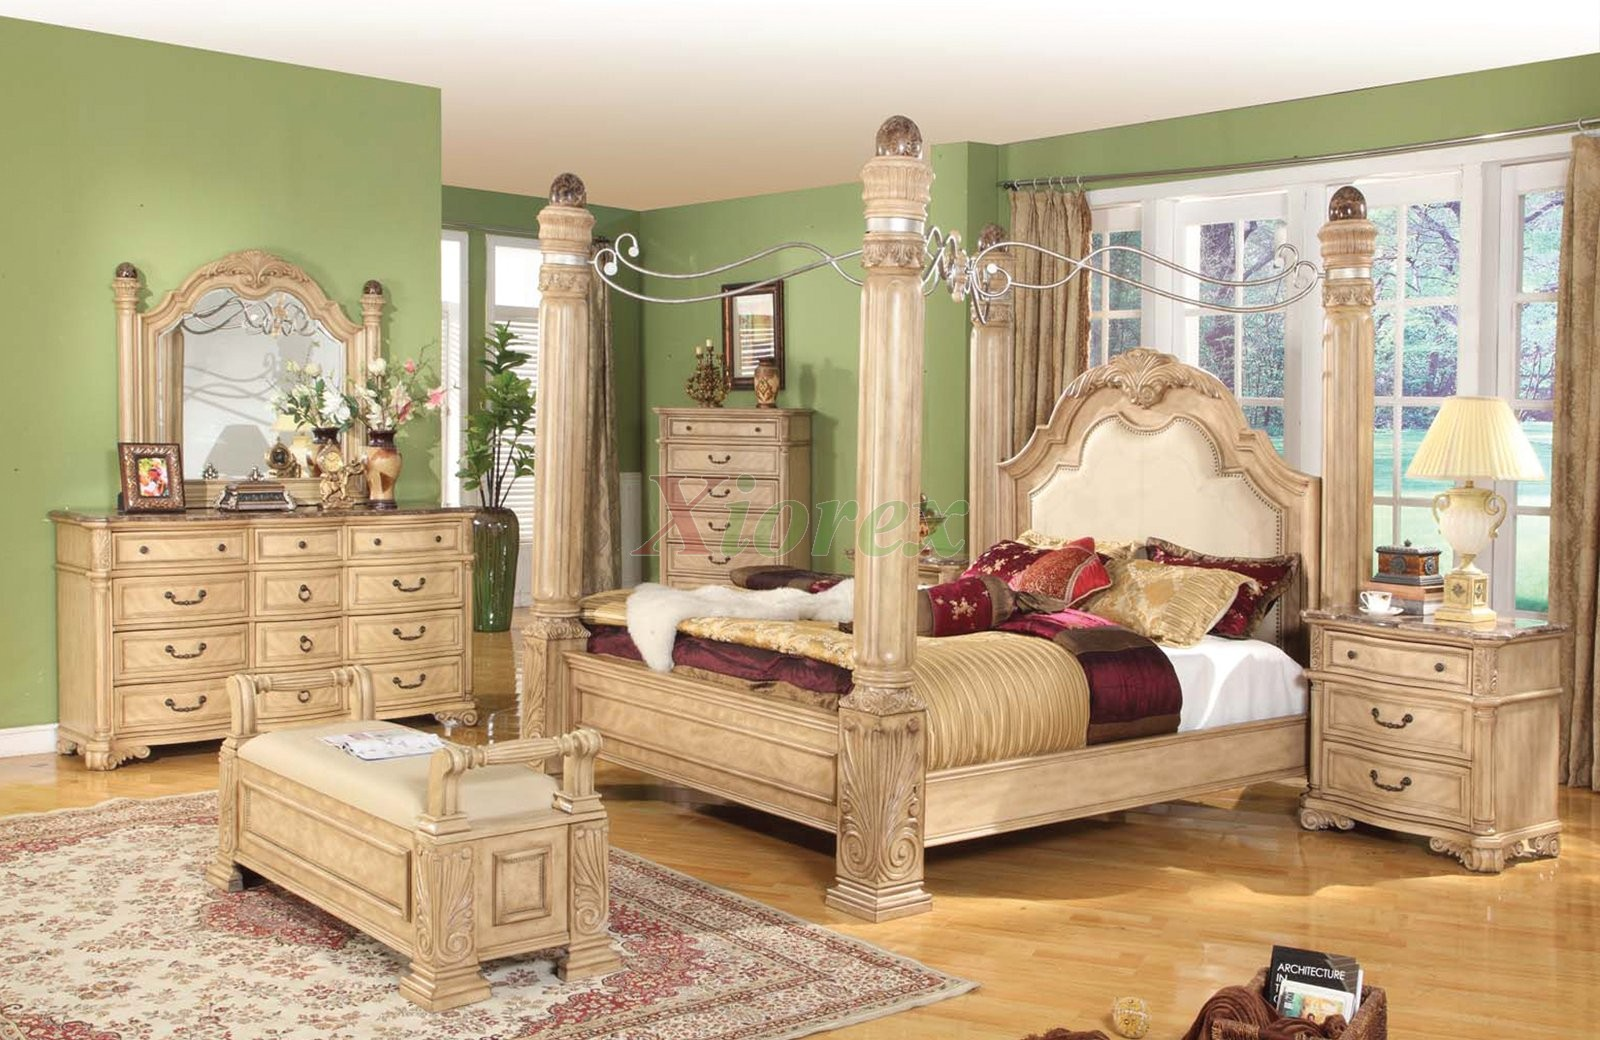 Captivating Queen And King Poster Bedroom Set With Metal Canopy And Leather Headboard.